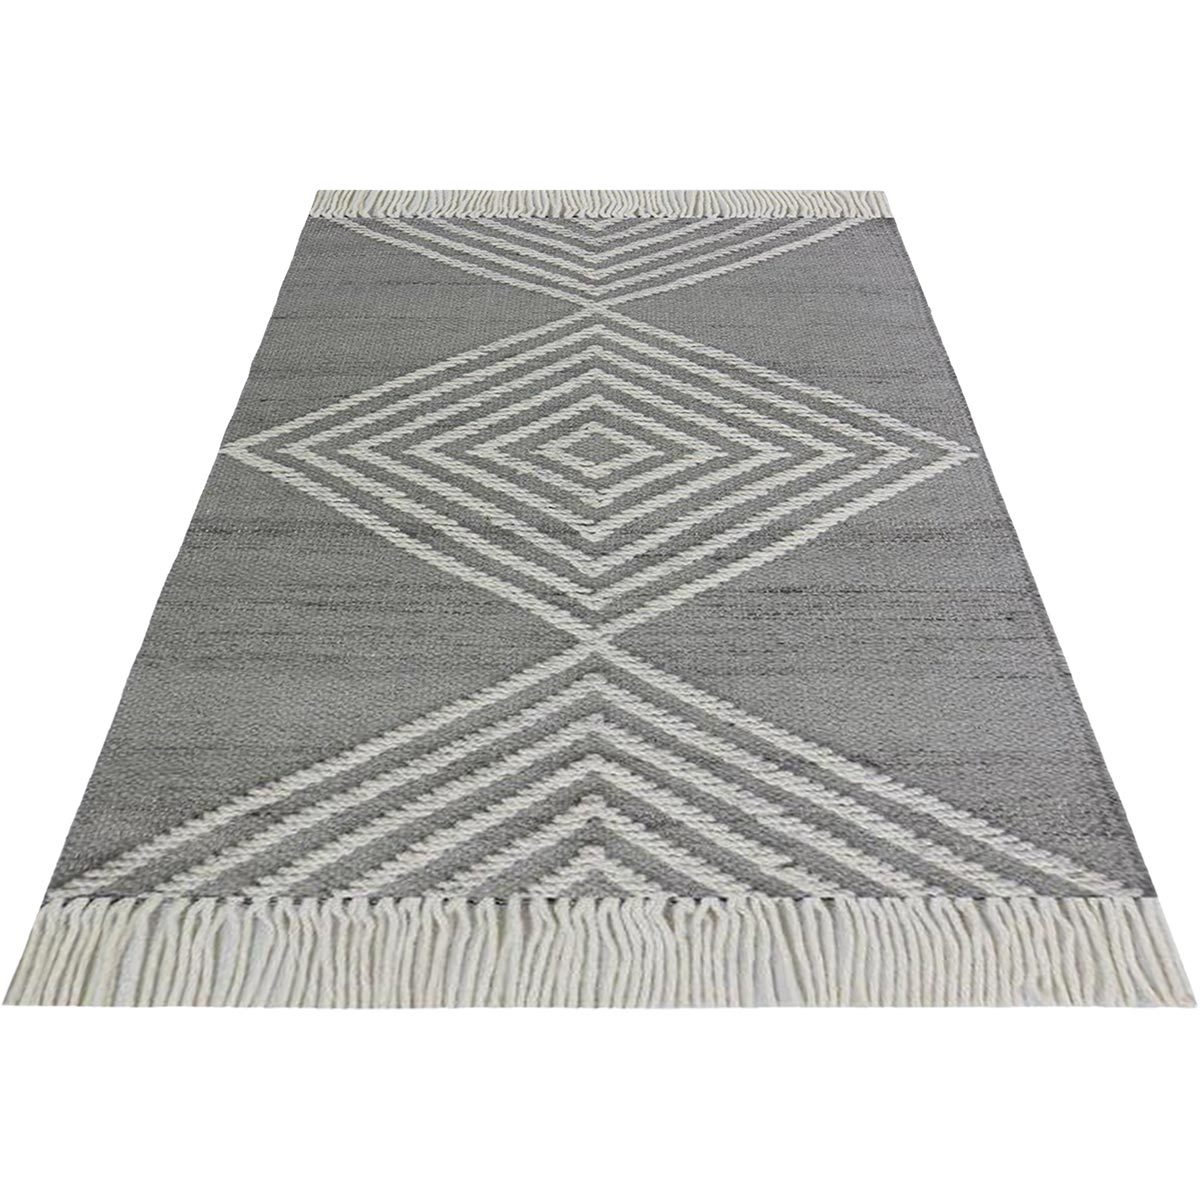 Tangier Rug 16 Grey/White 2